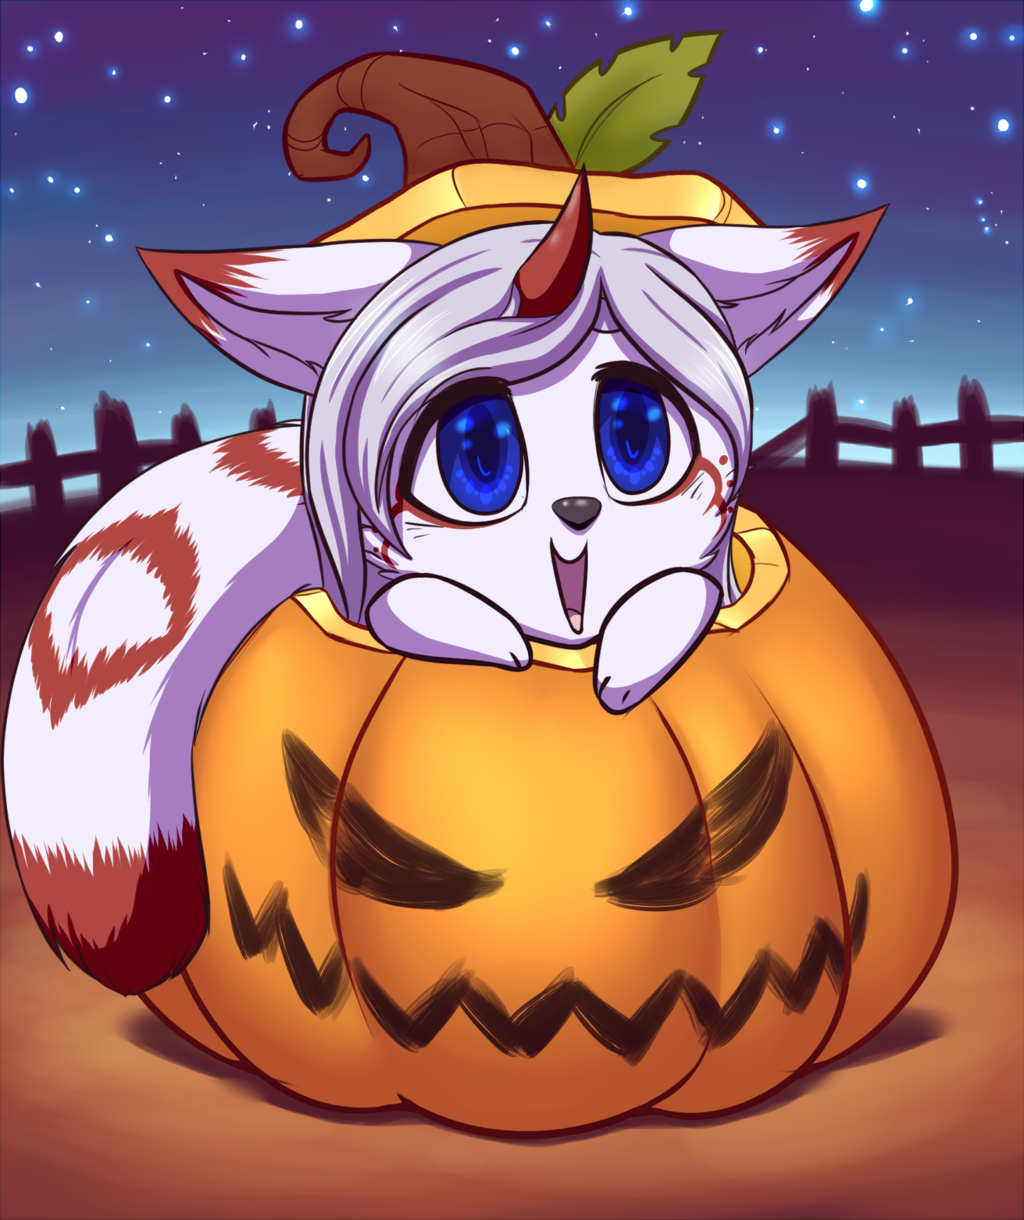 By egyptiandragon1, Pumpkin Surprise!